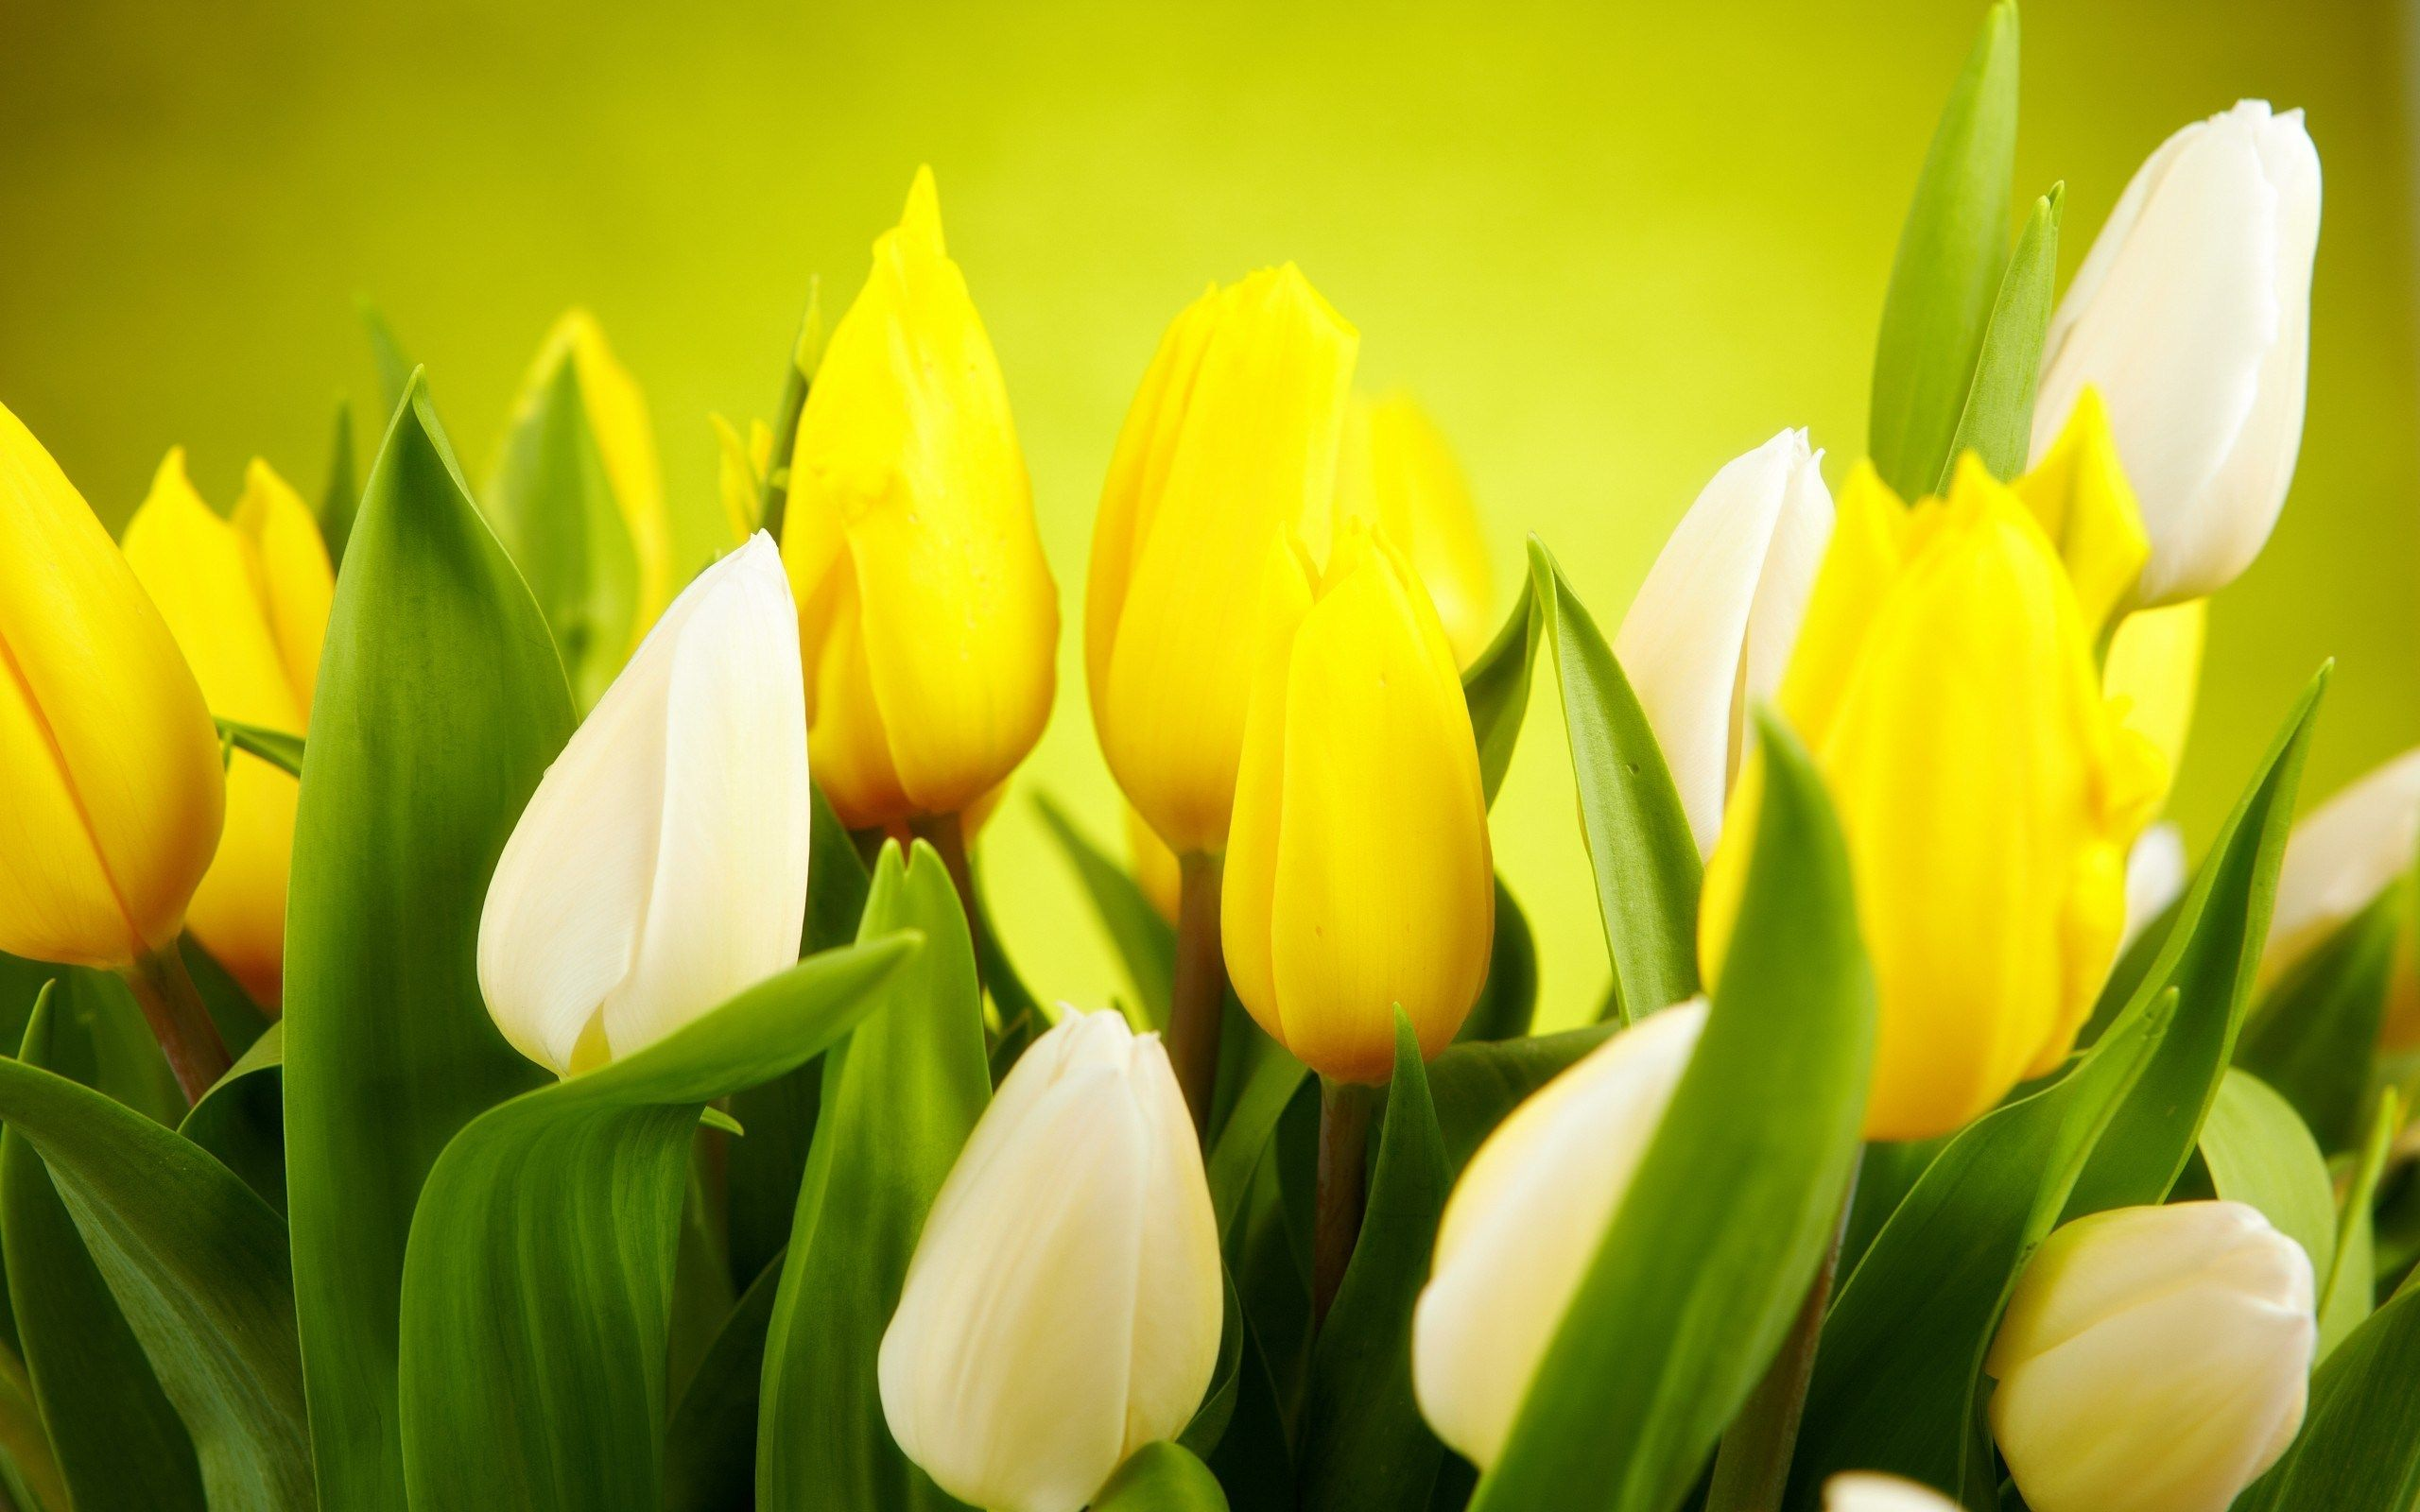 Tulips white yellow flowers spring lale pinterest yellow tulips white yellow flowers spring mightylinksfo Gallery